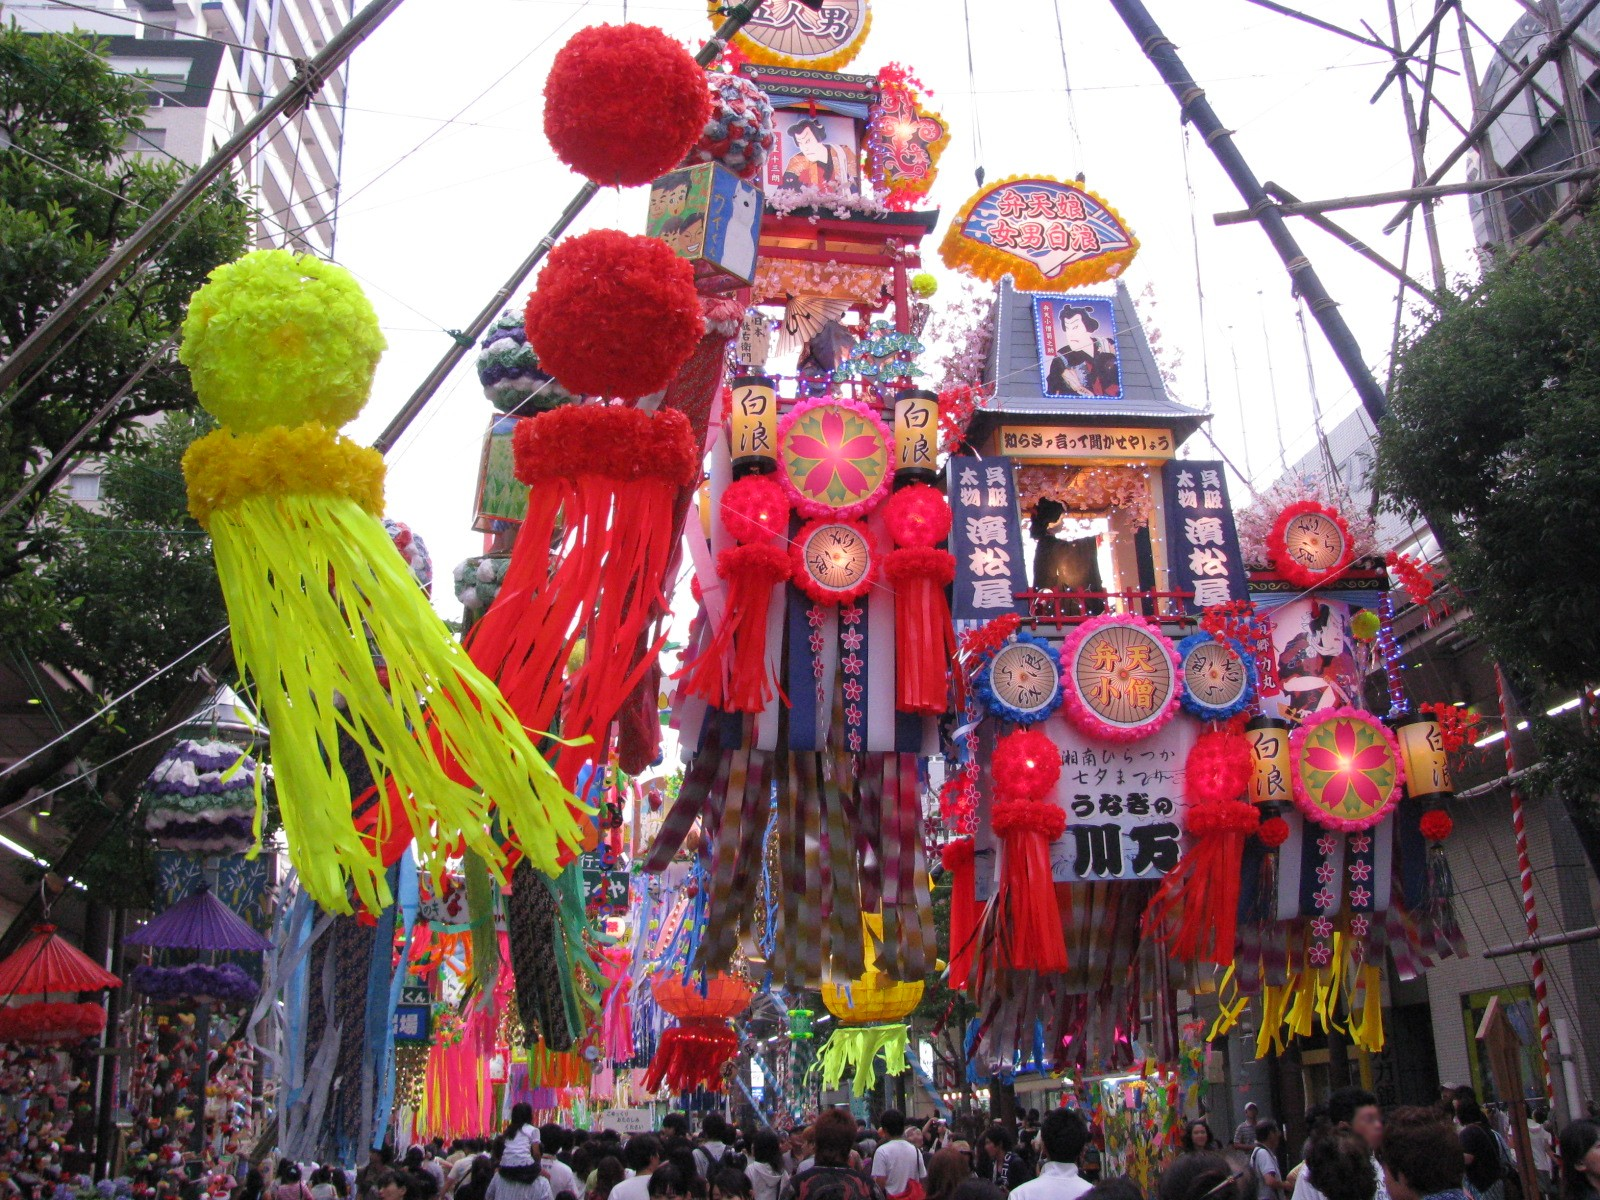 festival on 7th july it s one of famous festival in japan and china